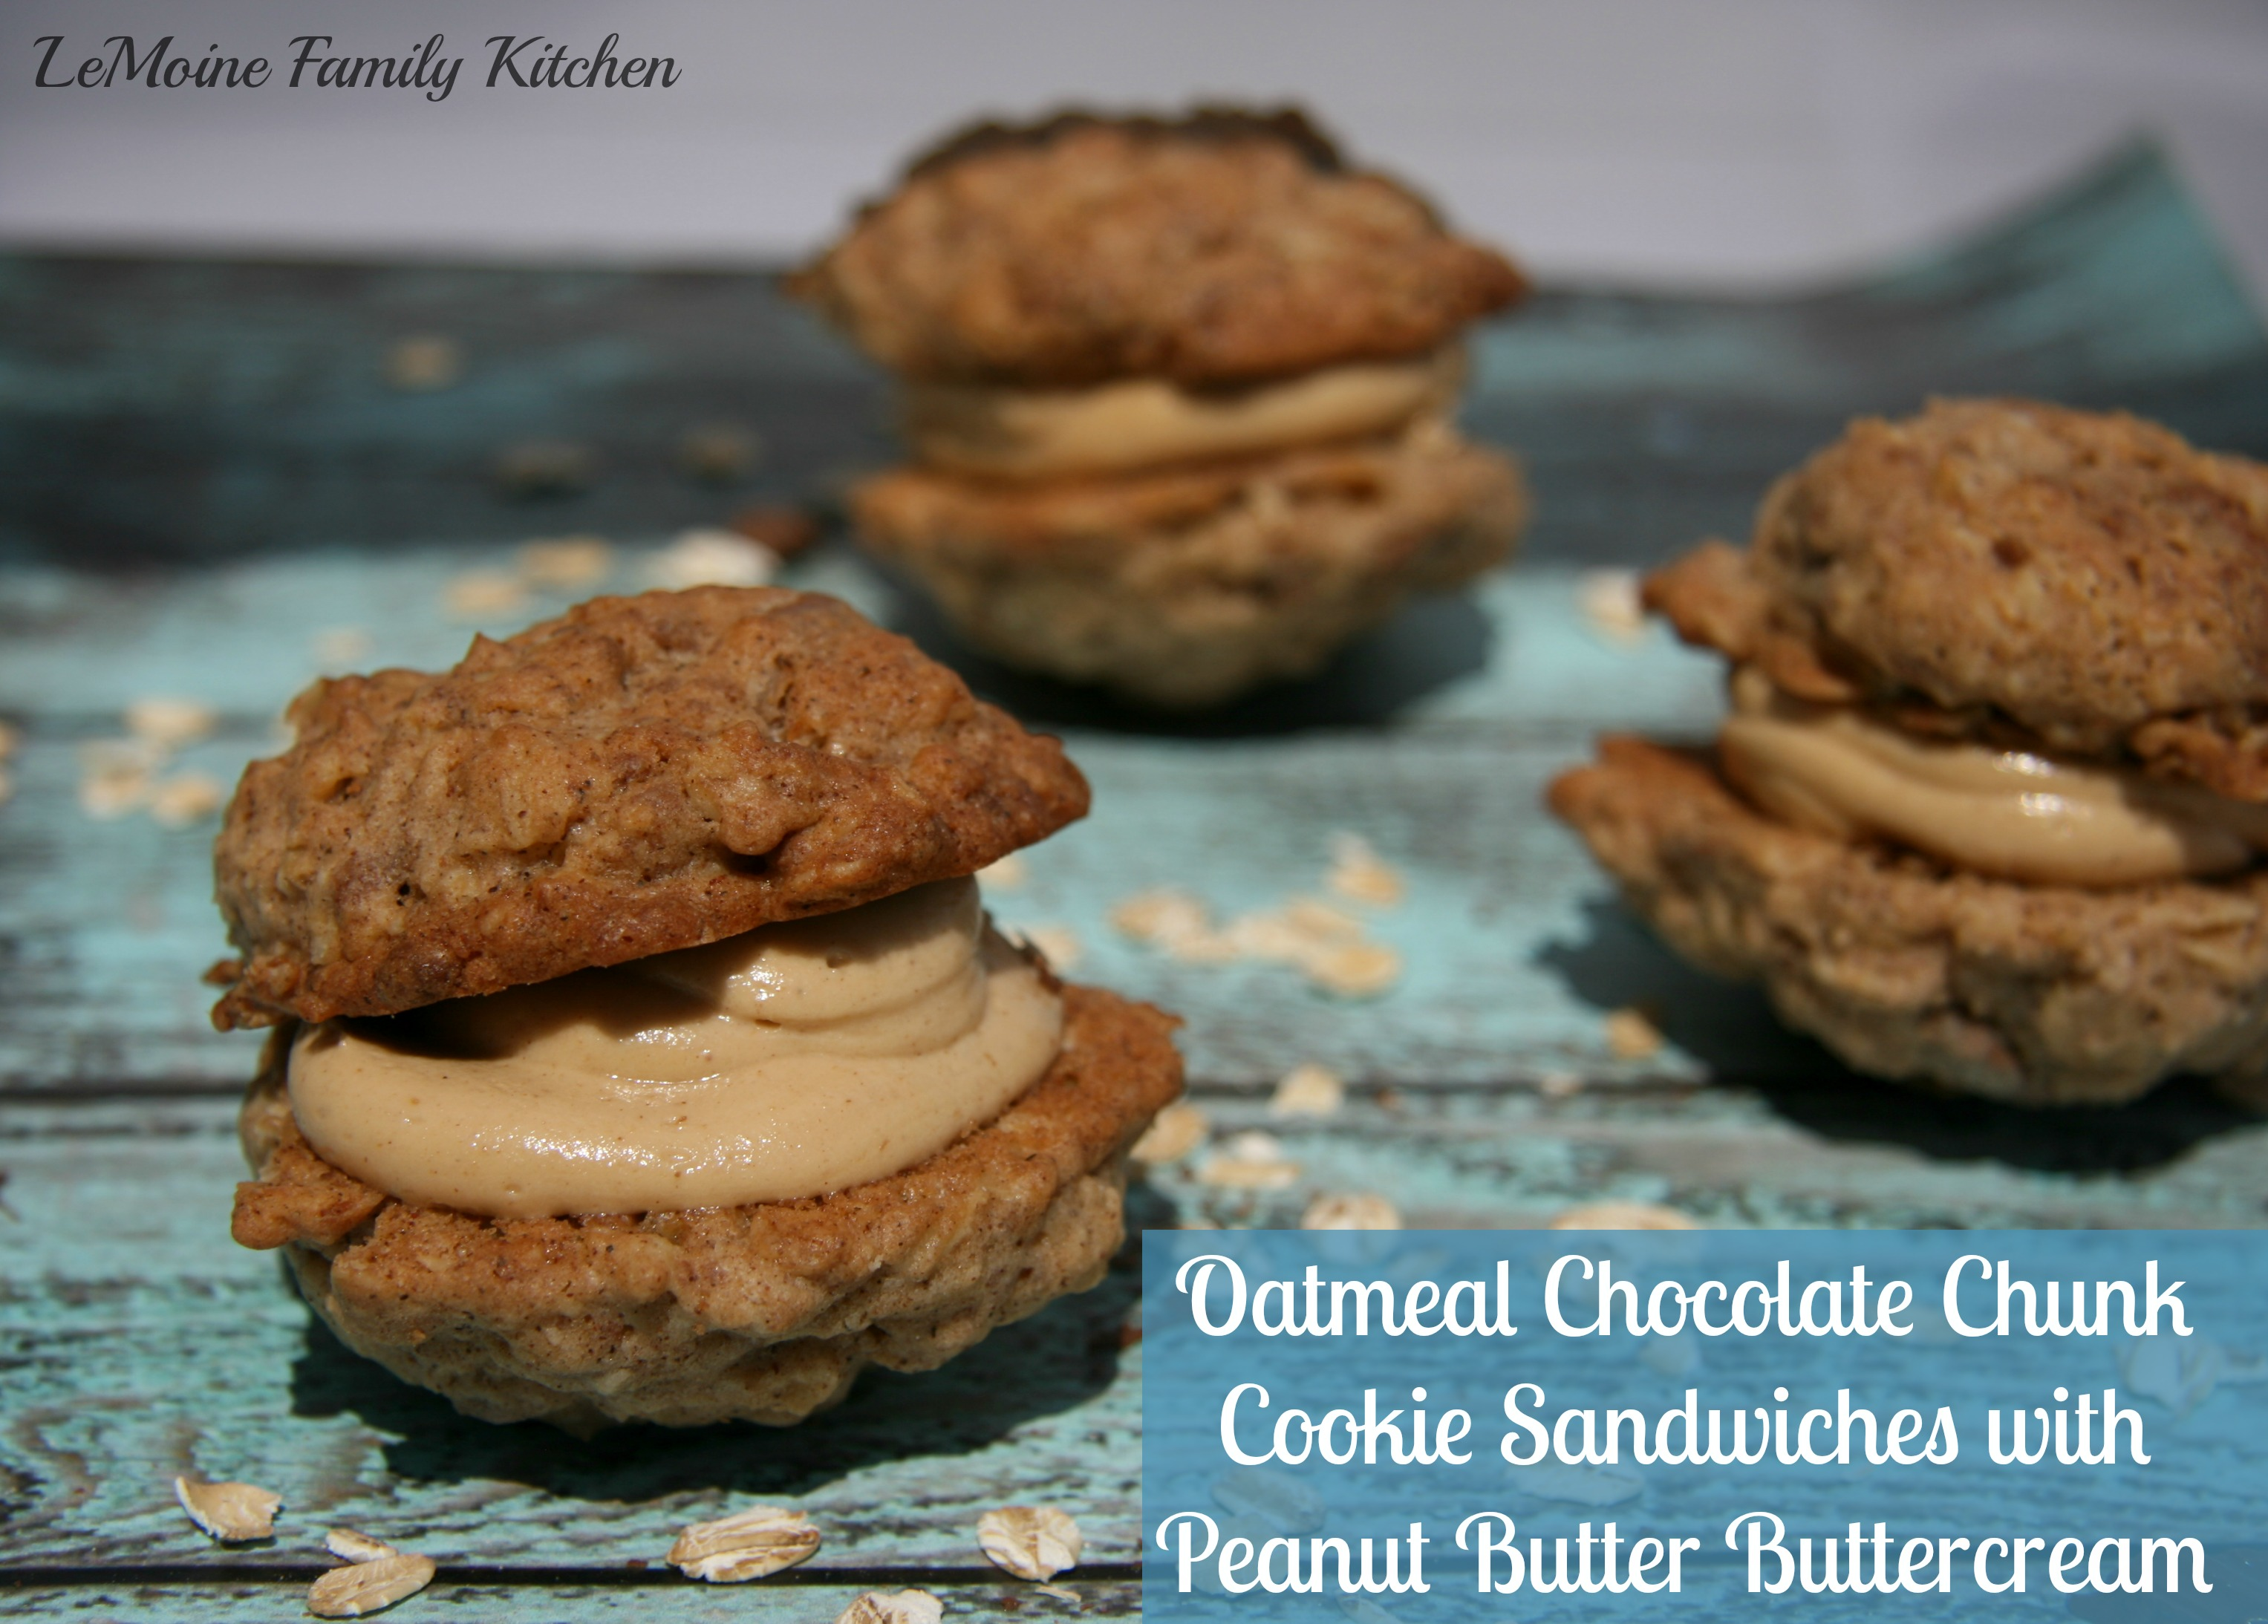 Oatmeal Chocolate Chunk Cookie Sandwiches with Peanut Butter ...